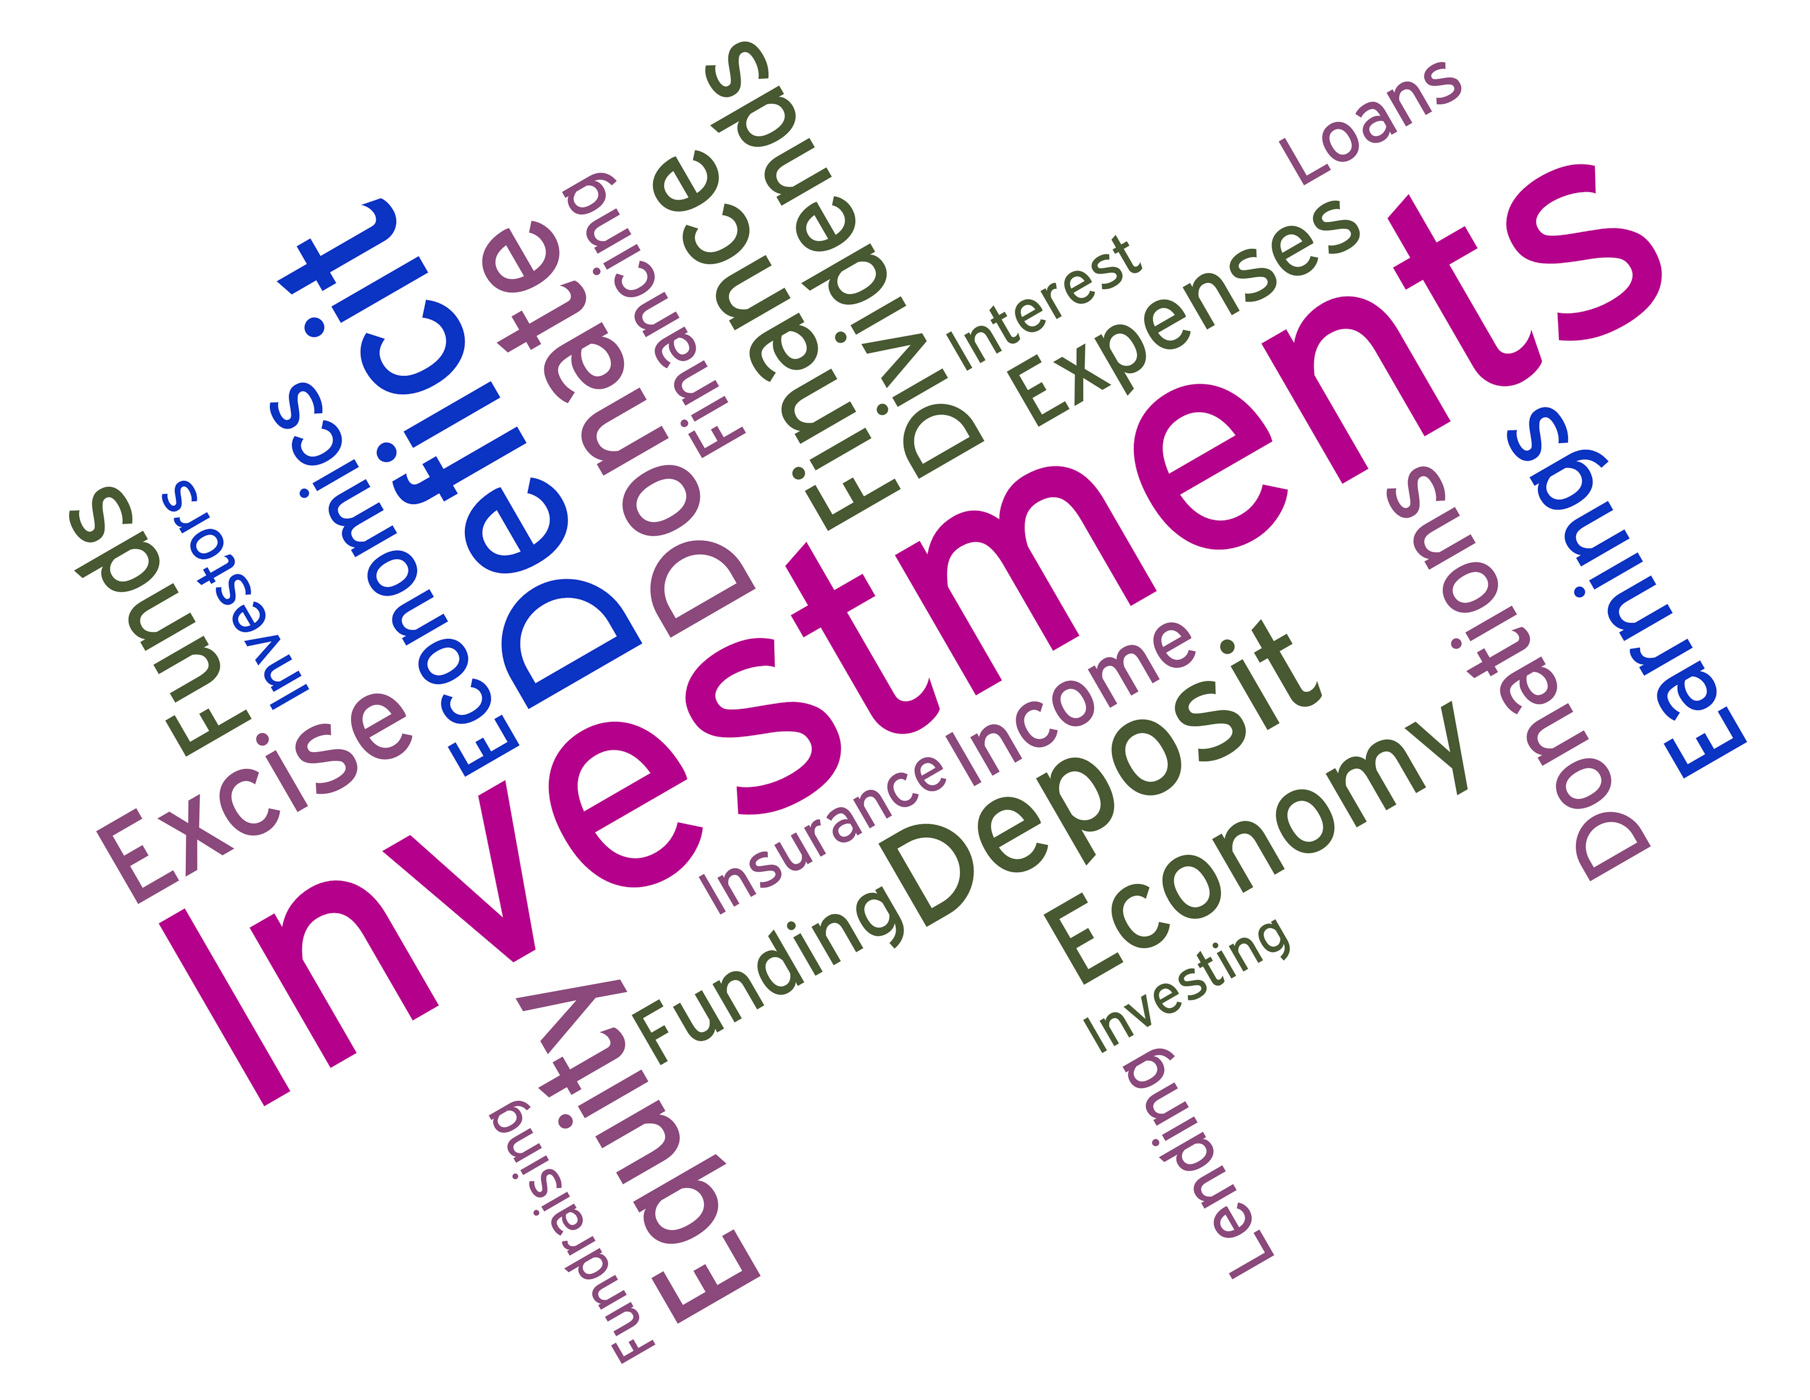 Investments Word Indicates Roi Stock And Wordcloud, Buyin, Wordcloud, Word, Text, HQ Photo